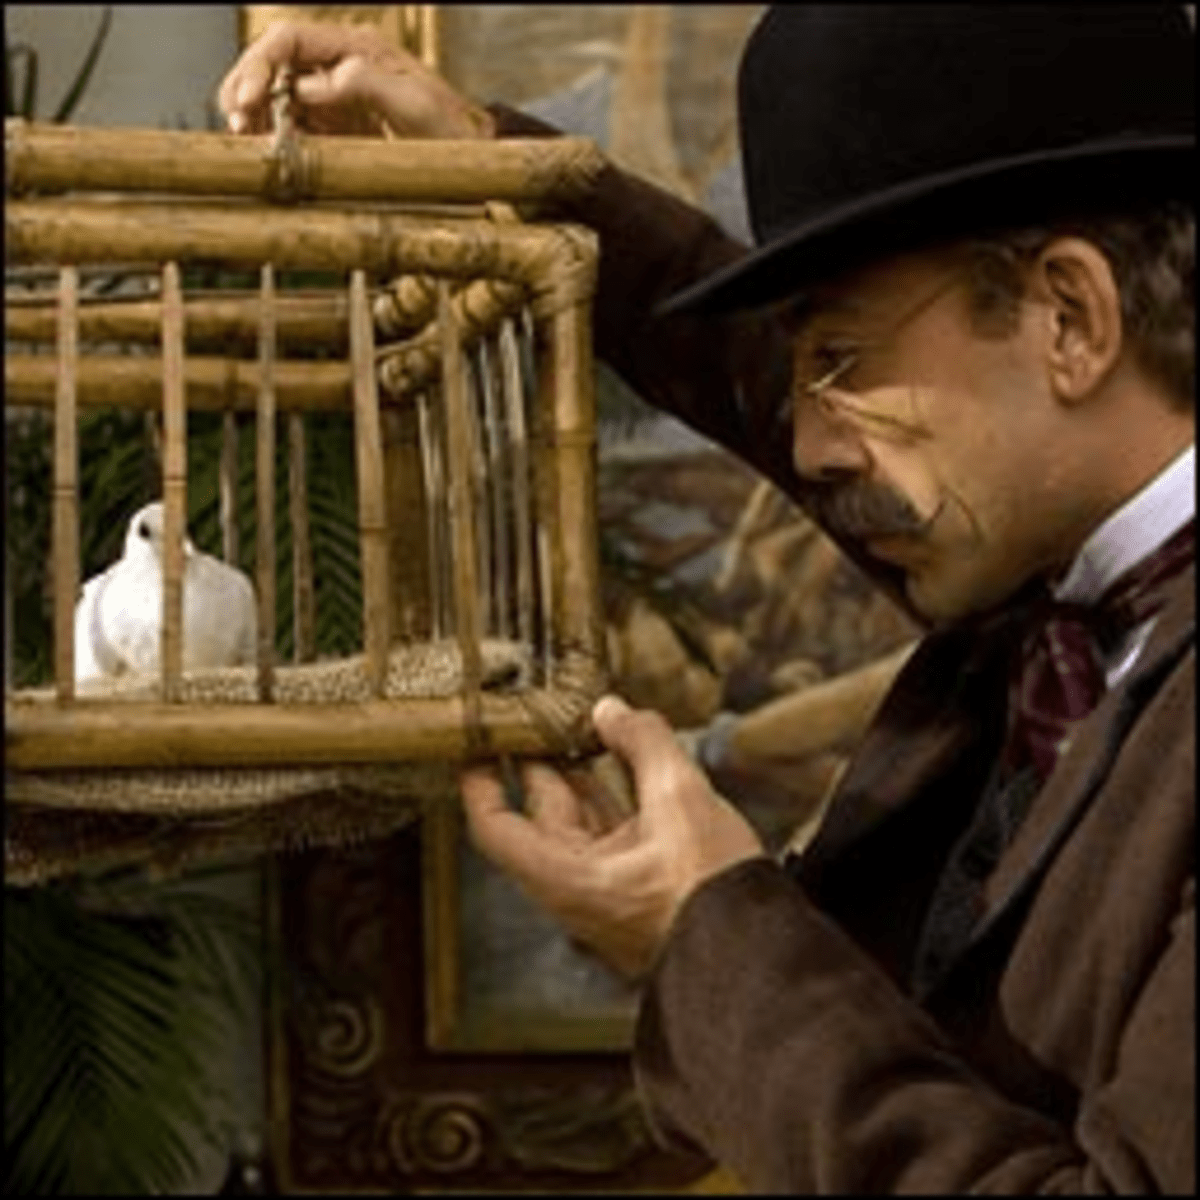 The Cage of Innocence: Cholera?s Bardem ponders a metaphor for his romantic yearnings.